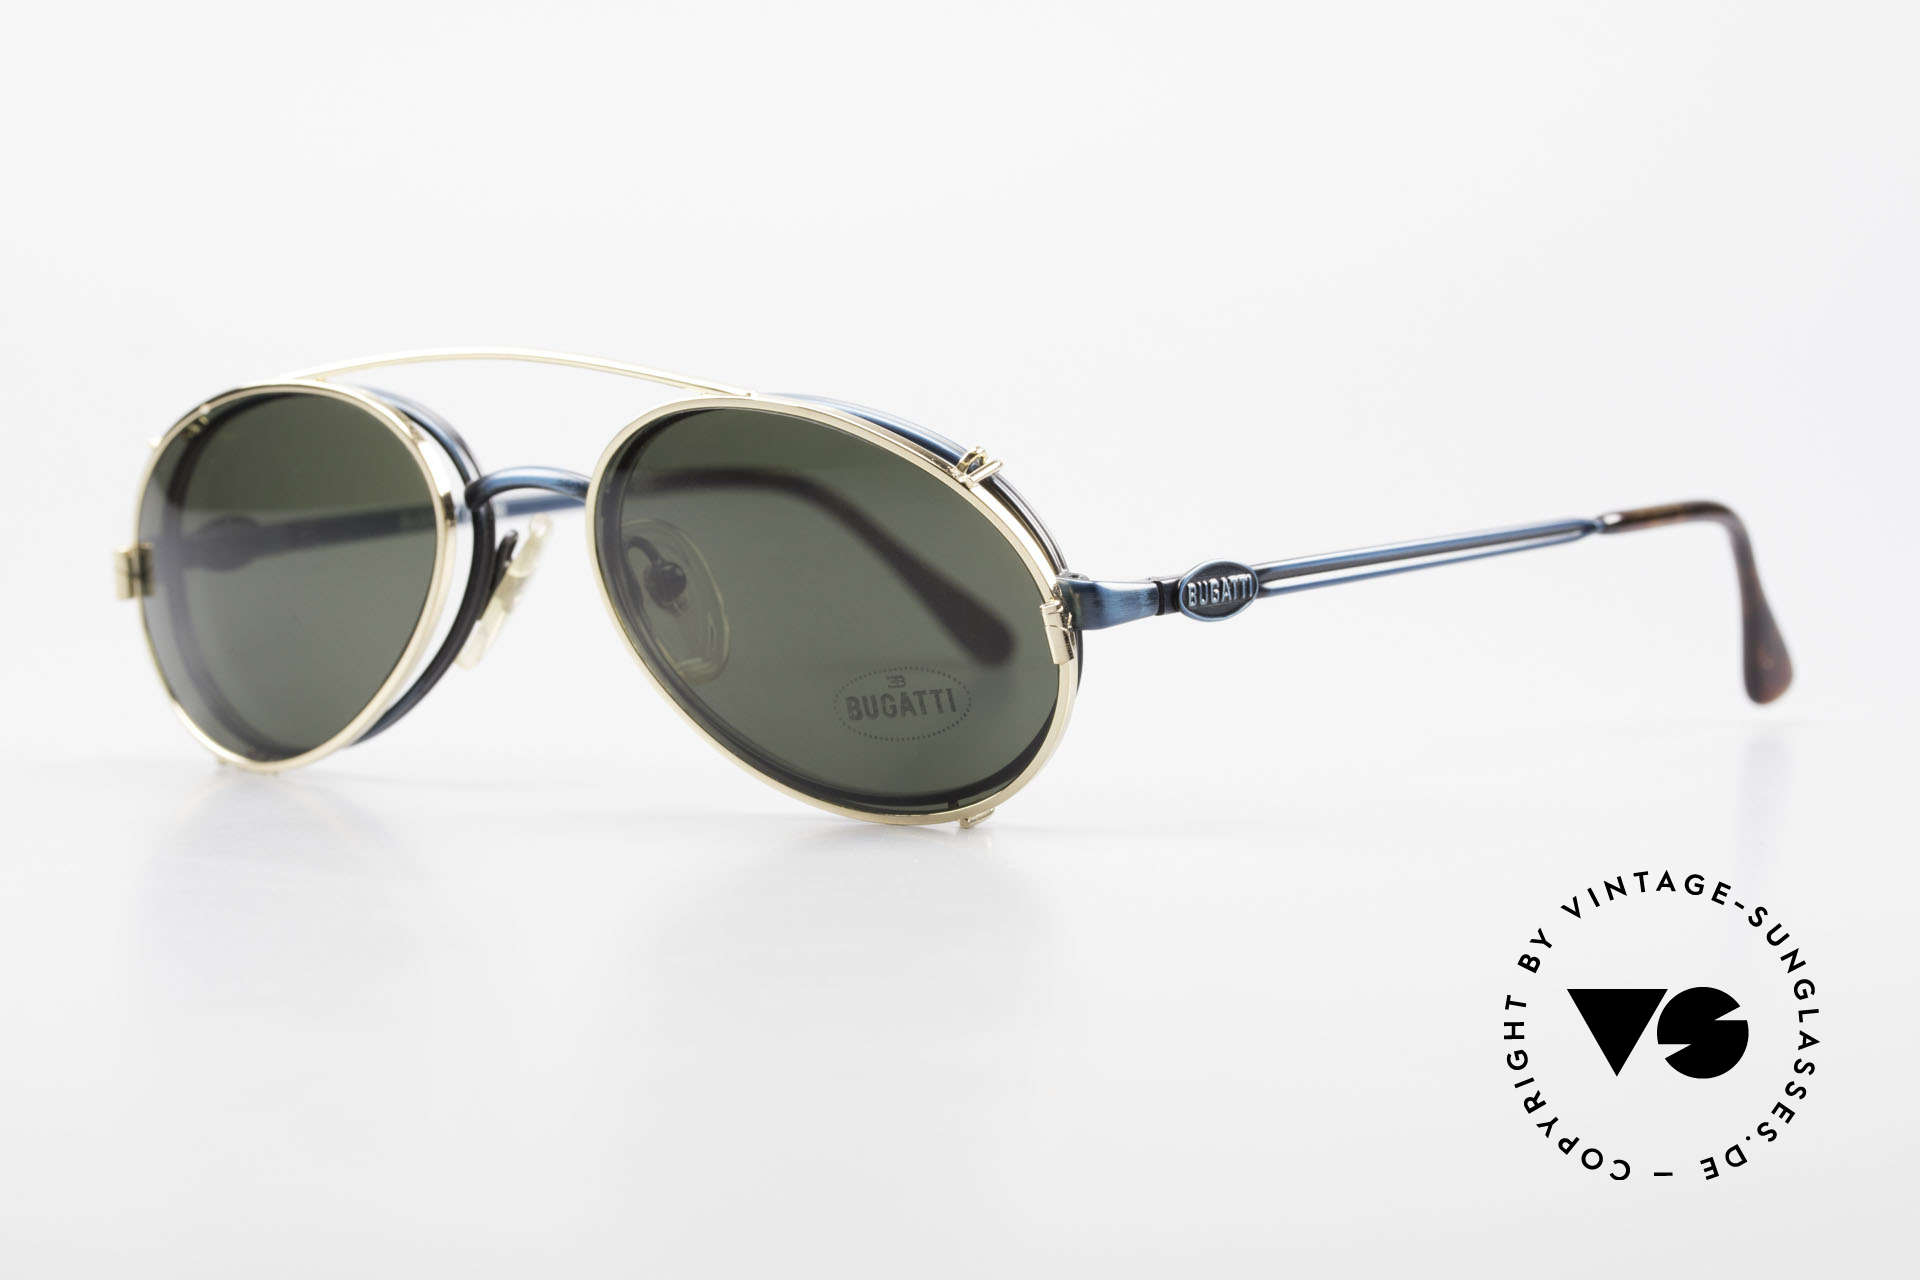 Bugatti 05728 Rare 90's Eyeglasses Clip On, steady metal frame with flexible spring hinges / arms, Made for Men